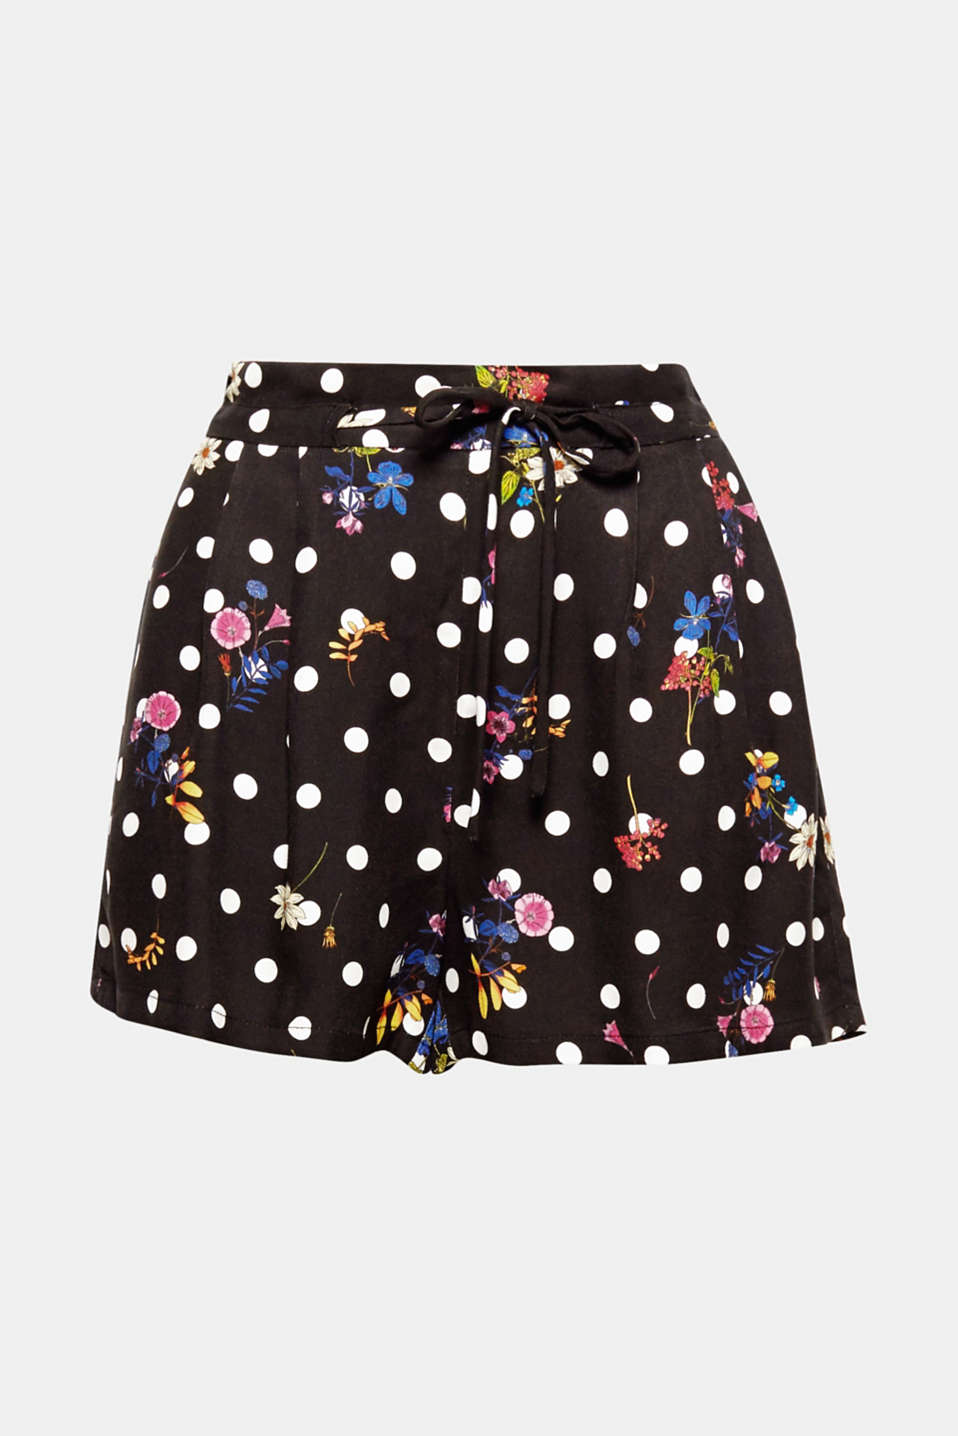 The best mix of patterns: the combination of romantic flowers and charming polka dots makes these flowing shorts a fabulous, eye-catching piece.